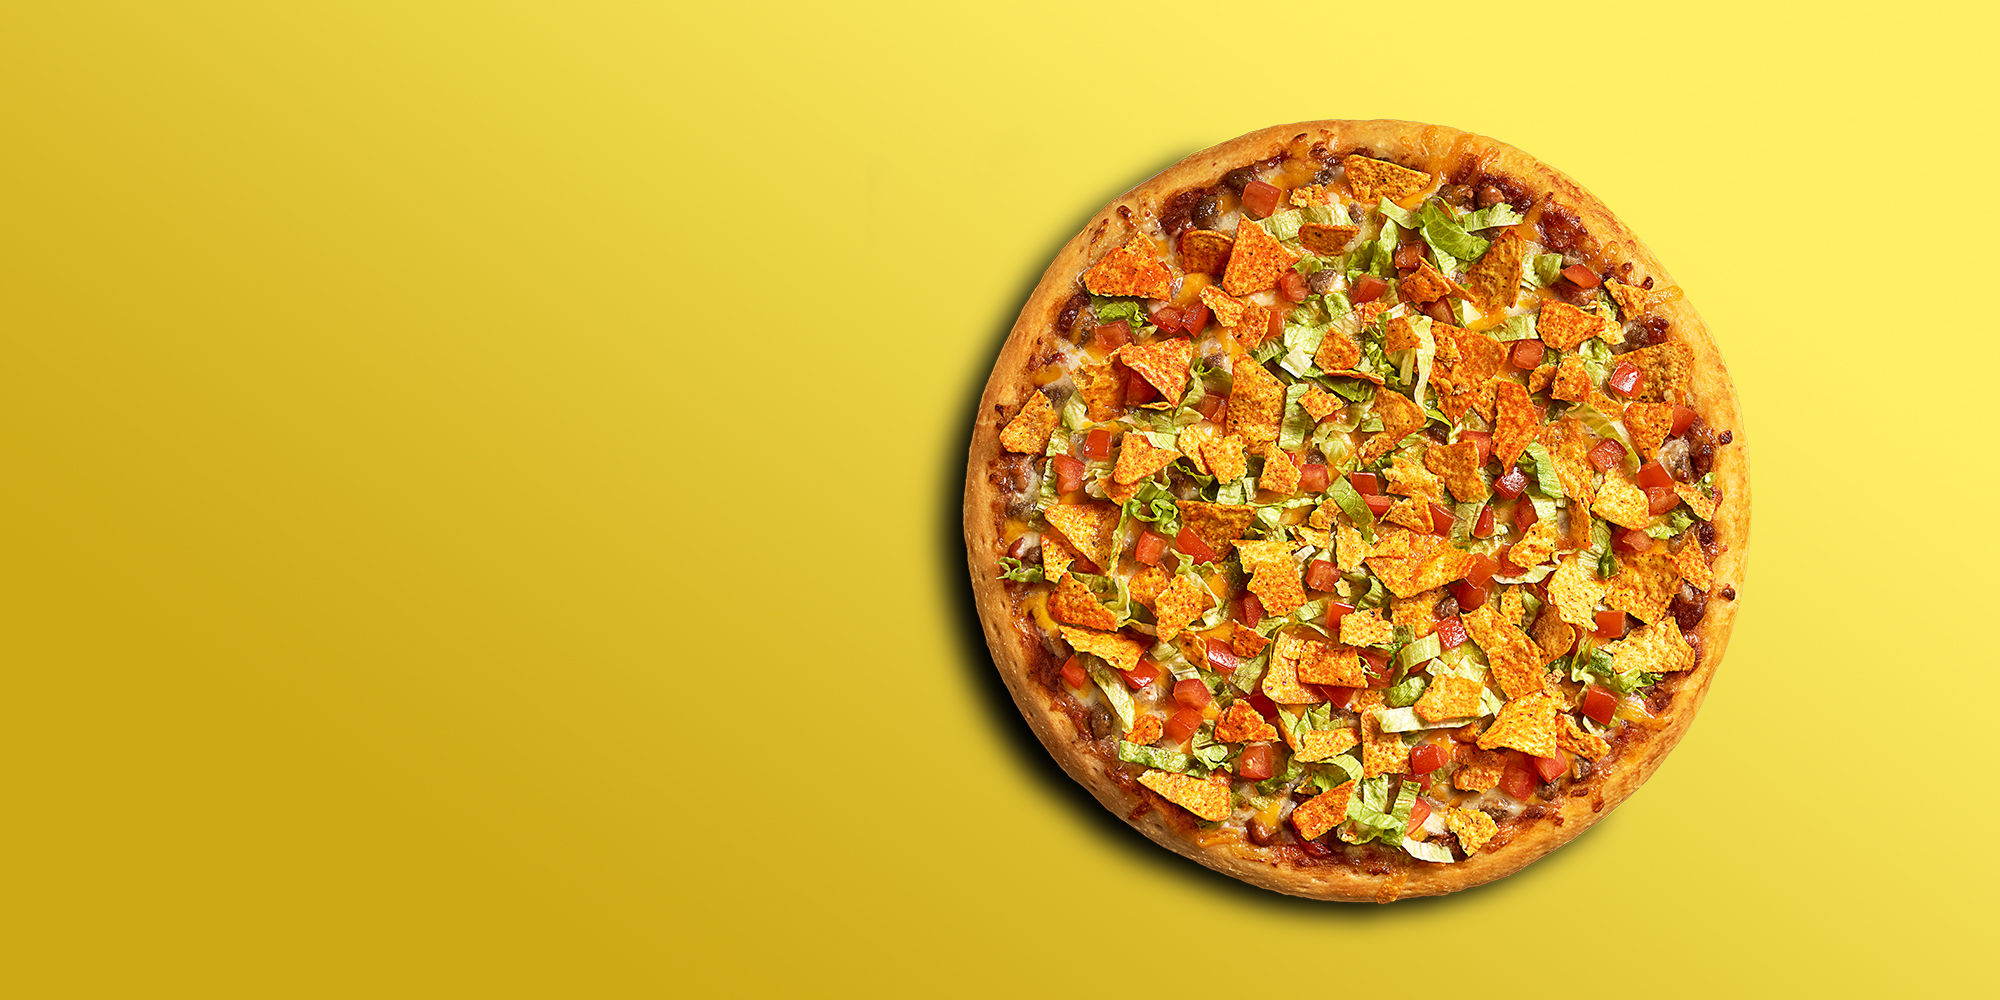 pizza image on yellow background